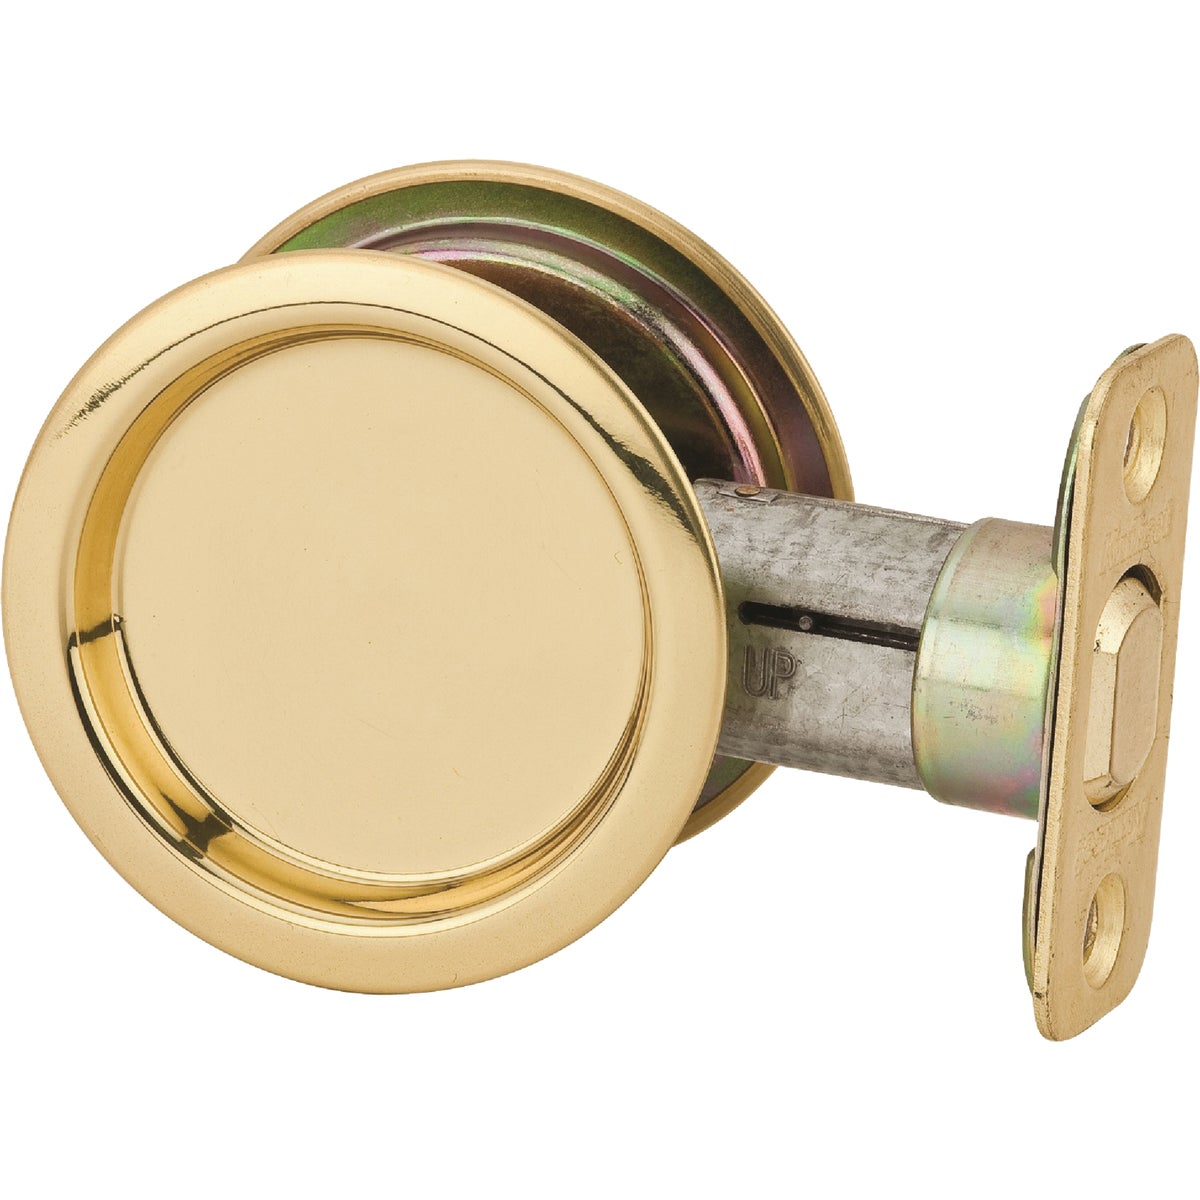 PB PASS POCKET DOOR PULL - 334 3 by Kwikset